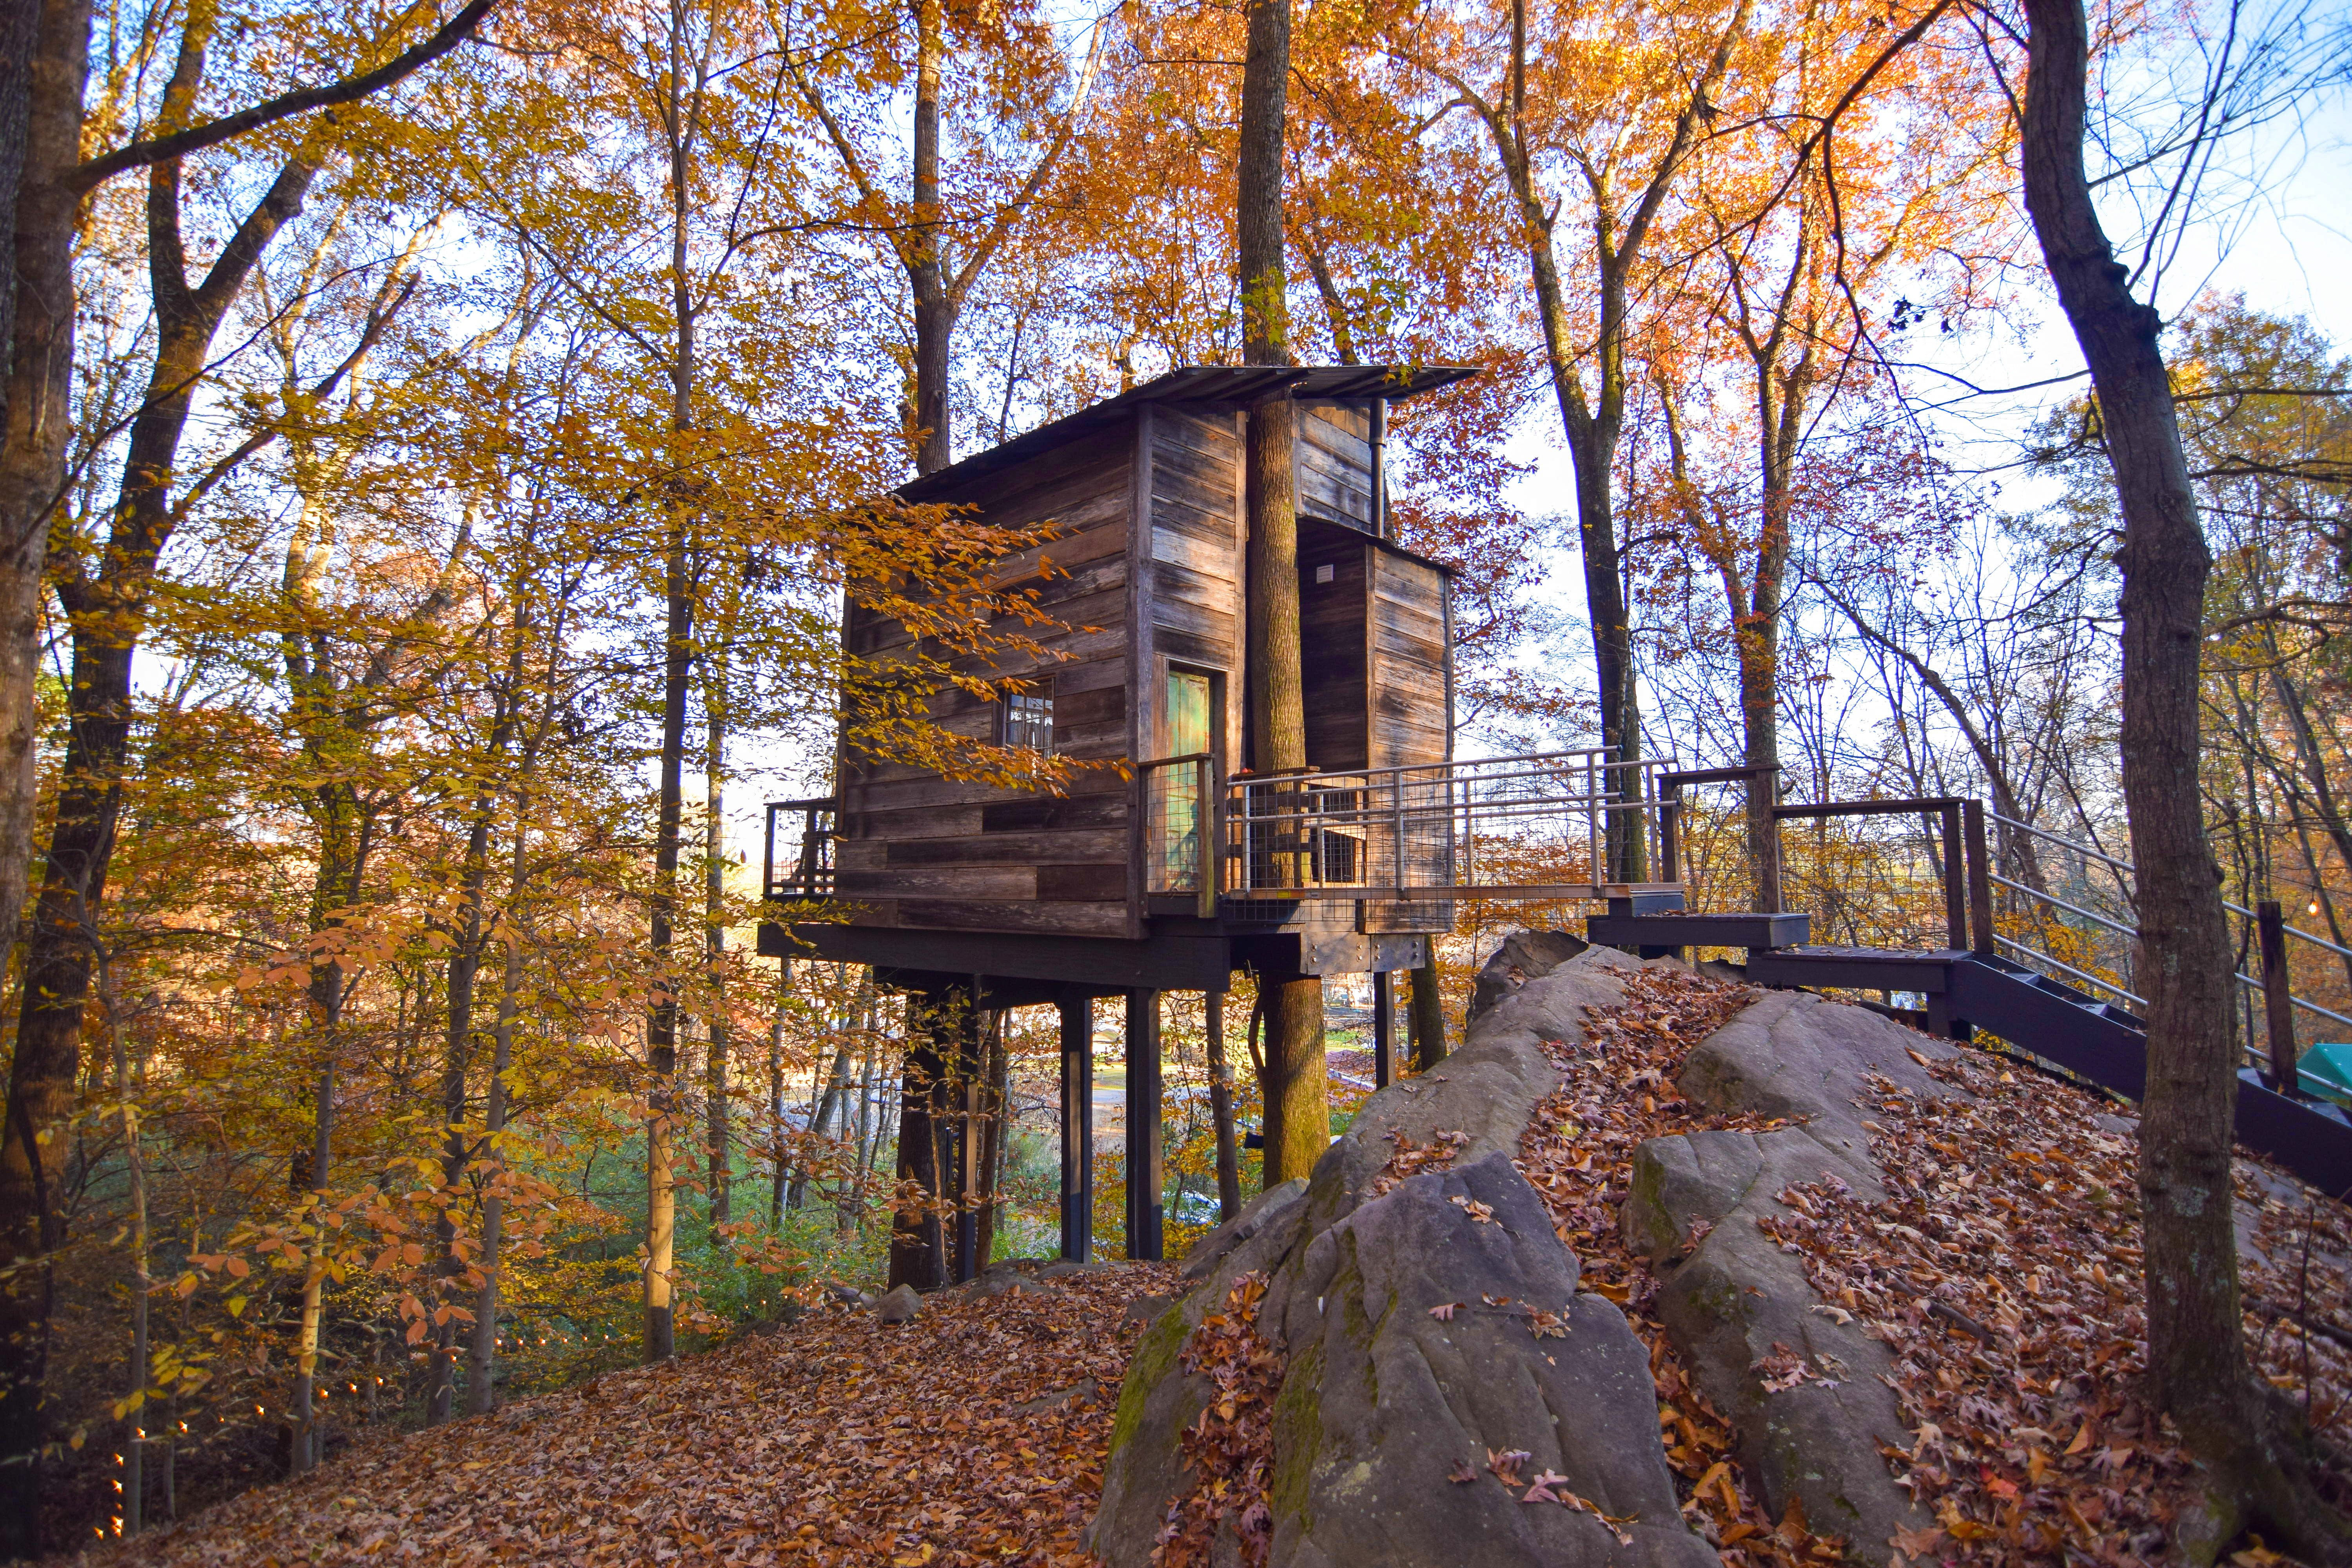 The warm rustic wood exterior of one of the Treetop Hideaways tree houses in Chattanooga, Tennessee